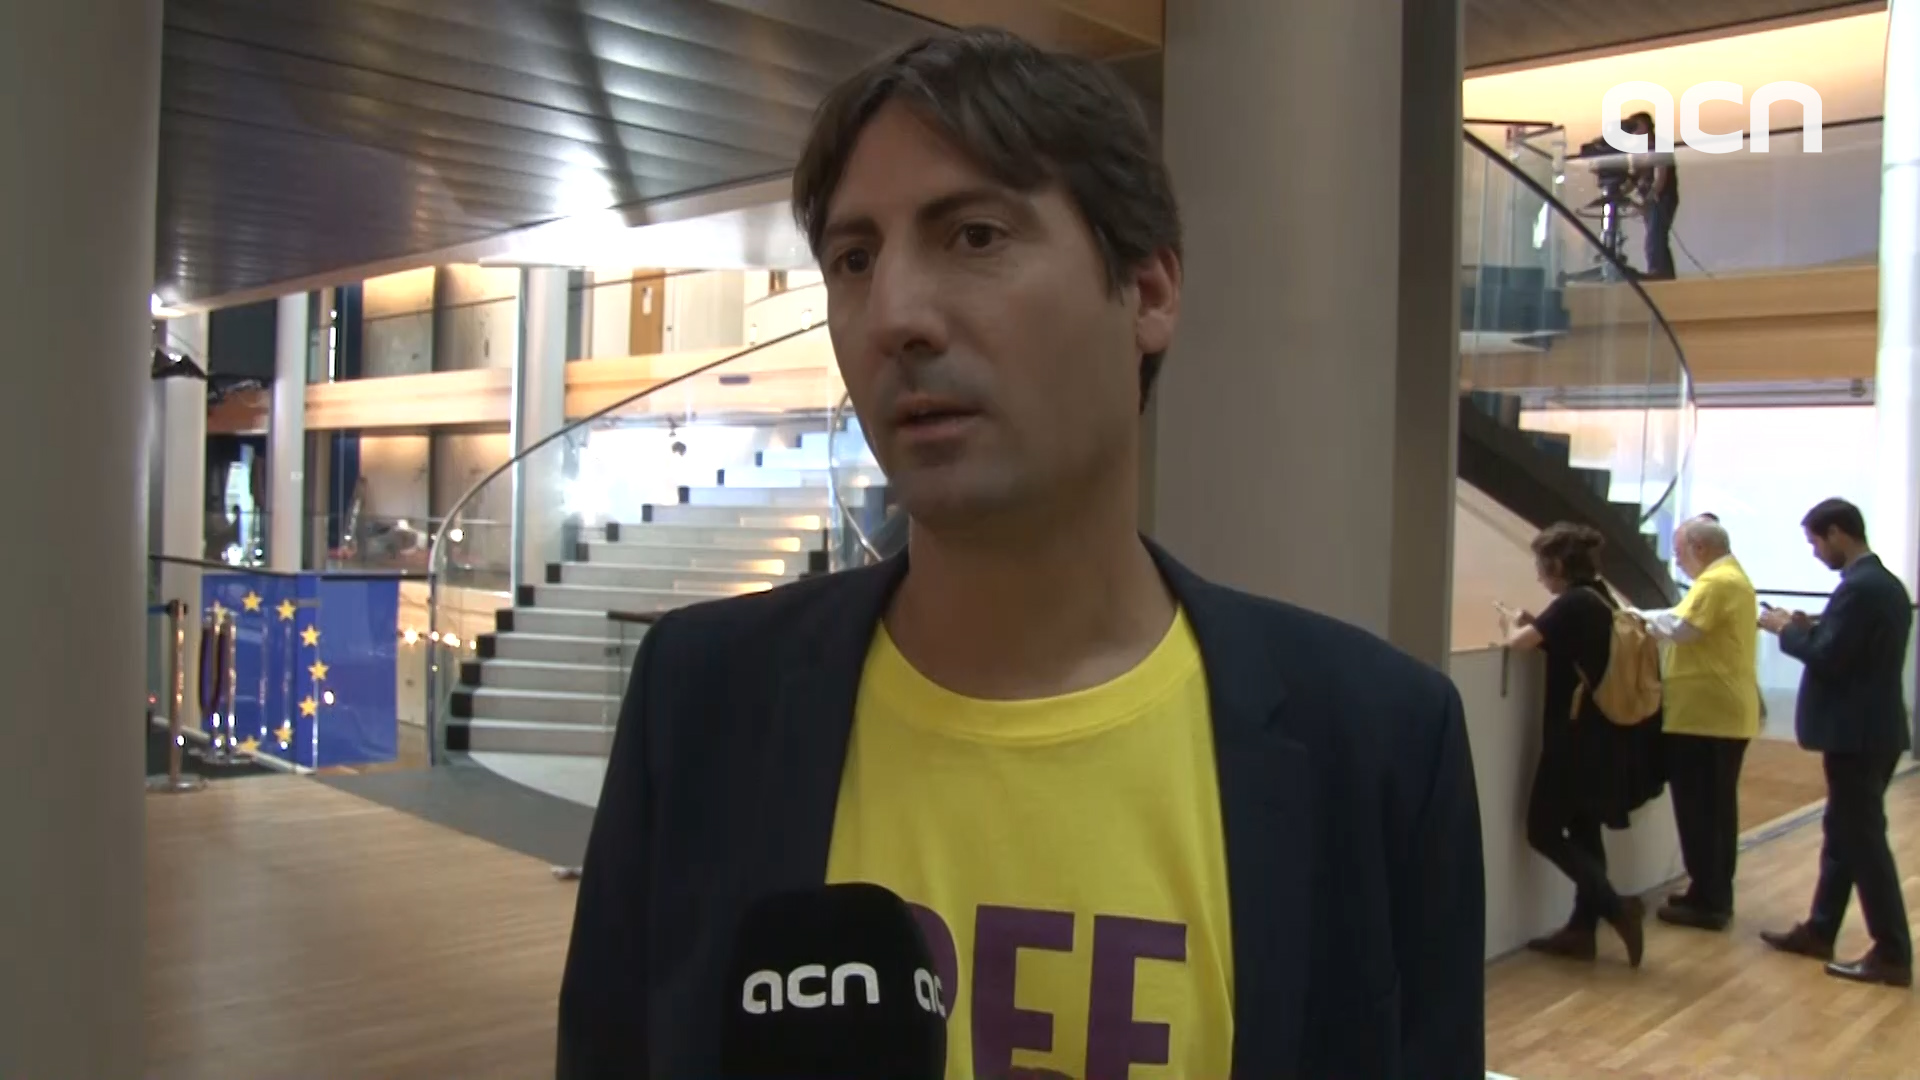 MEP Jordi Solé speaks to the Catalan News Agency